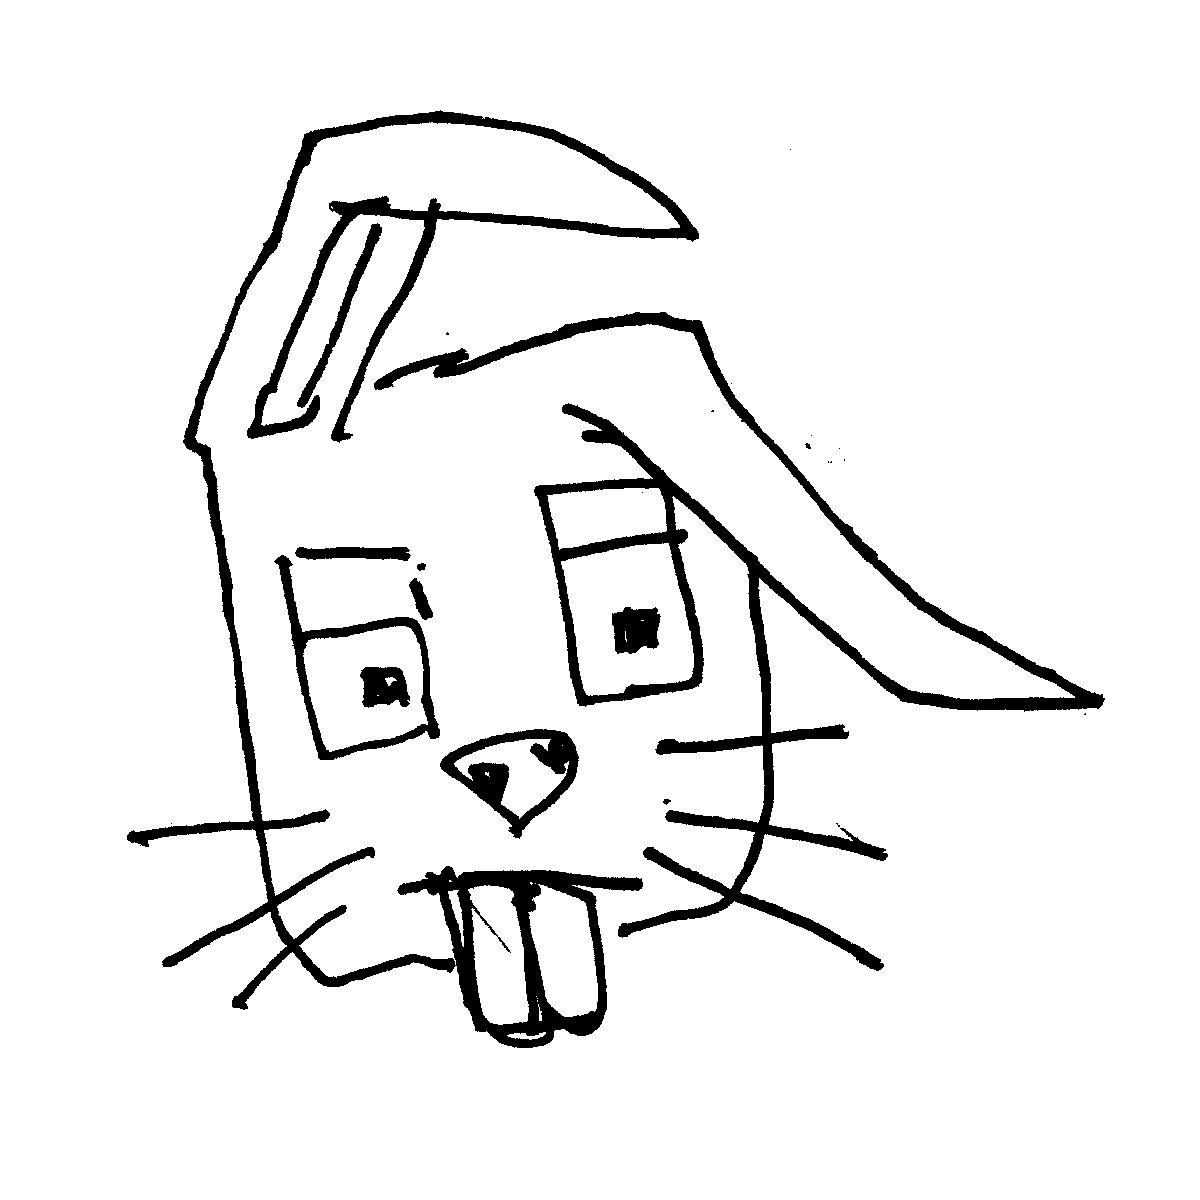 rabbit cartoon doodle